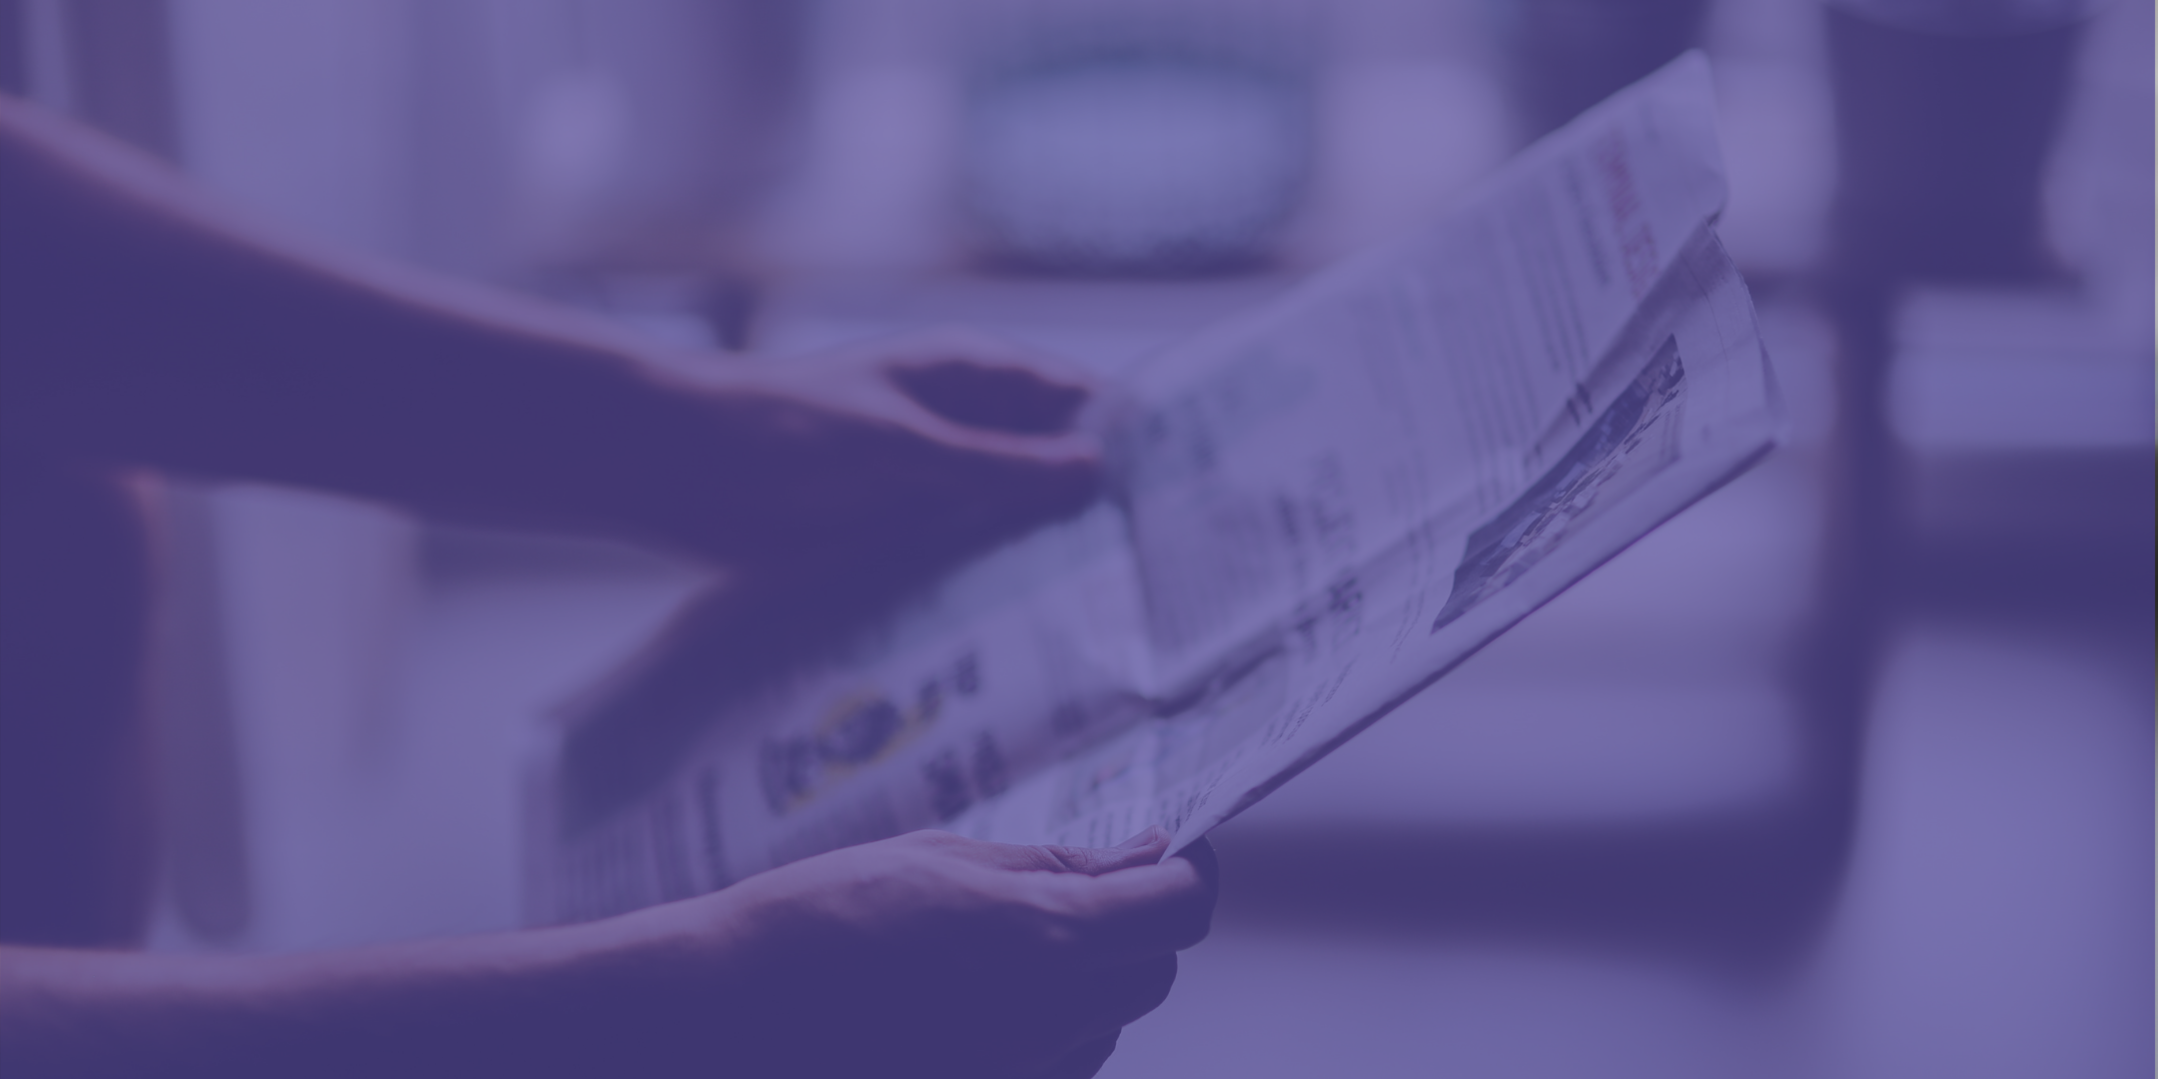 Security news. Cybersecurity. Reading newspaper.